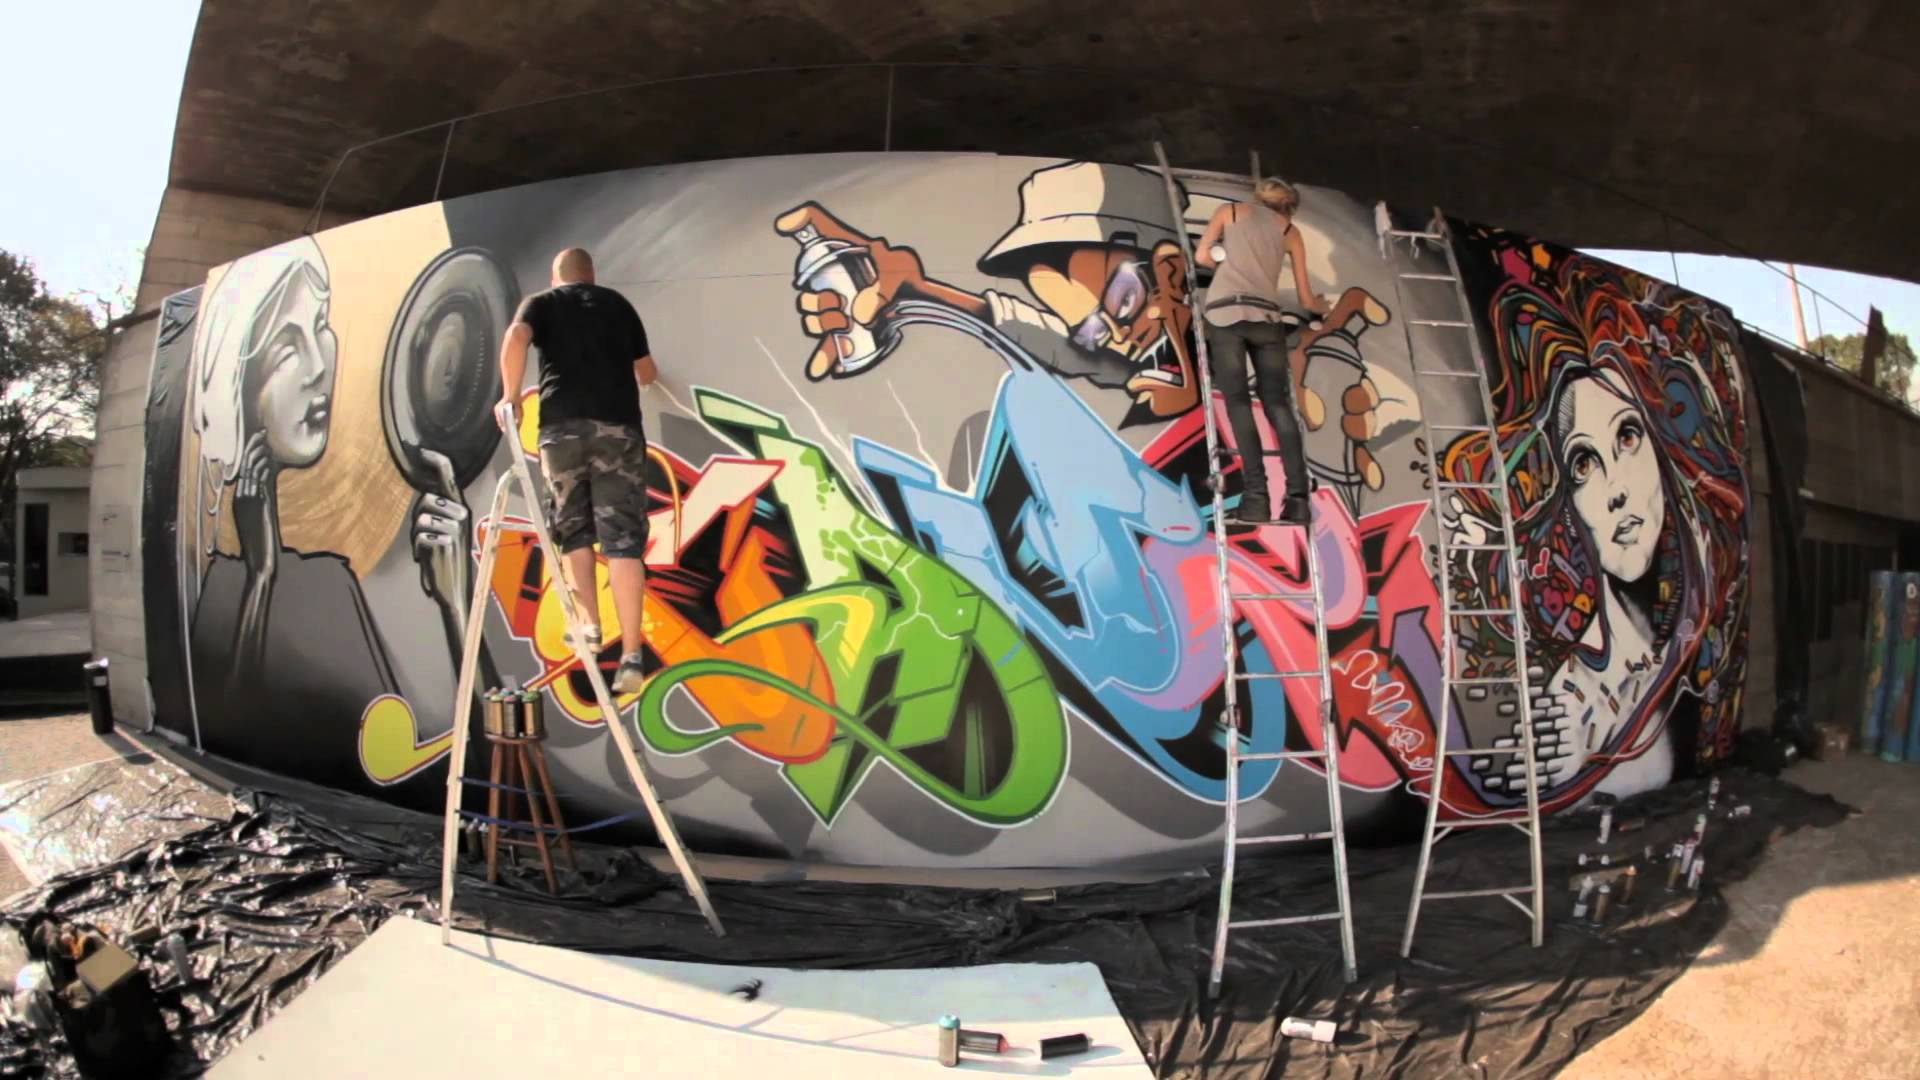 Grafitti fine art 2015 - Iii Bienal Internacional Graffiti Fine Art Data E Hor Rio De 17 De Abril A 19 De Maio Ter As Das 10h S 21h Quarta A Domingo Das 10h S 18h